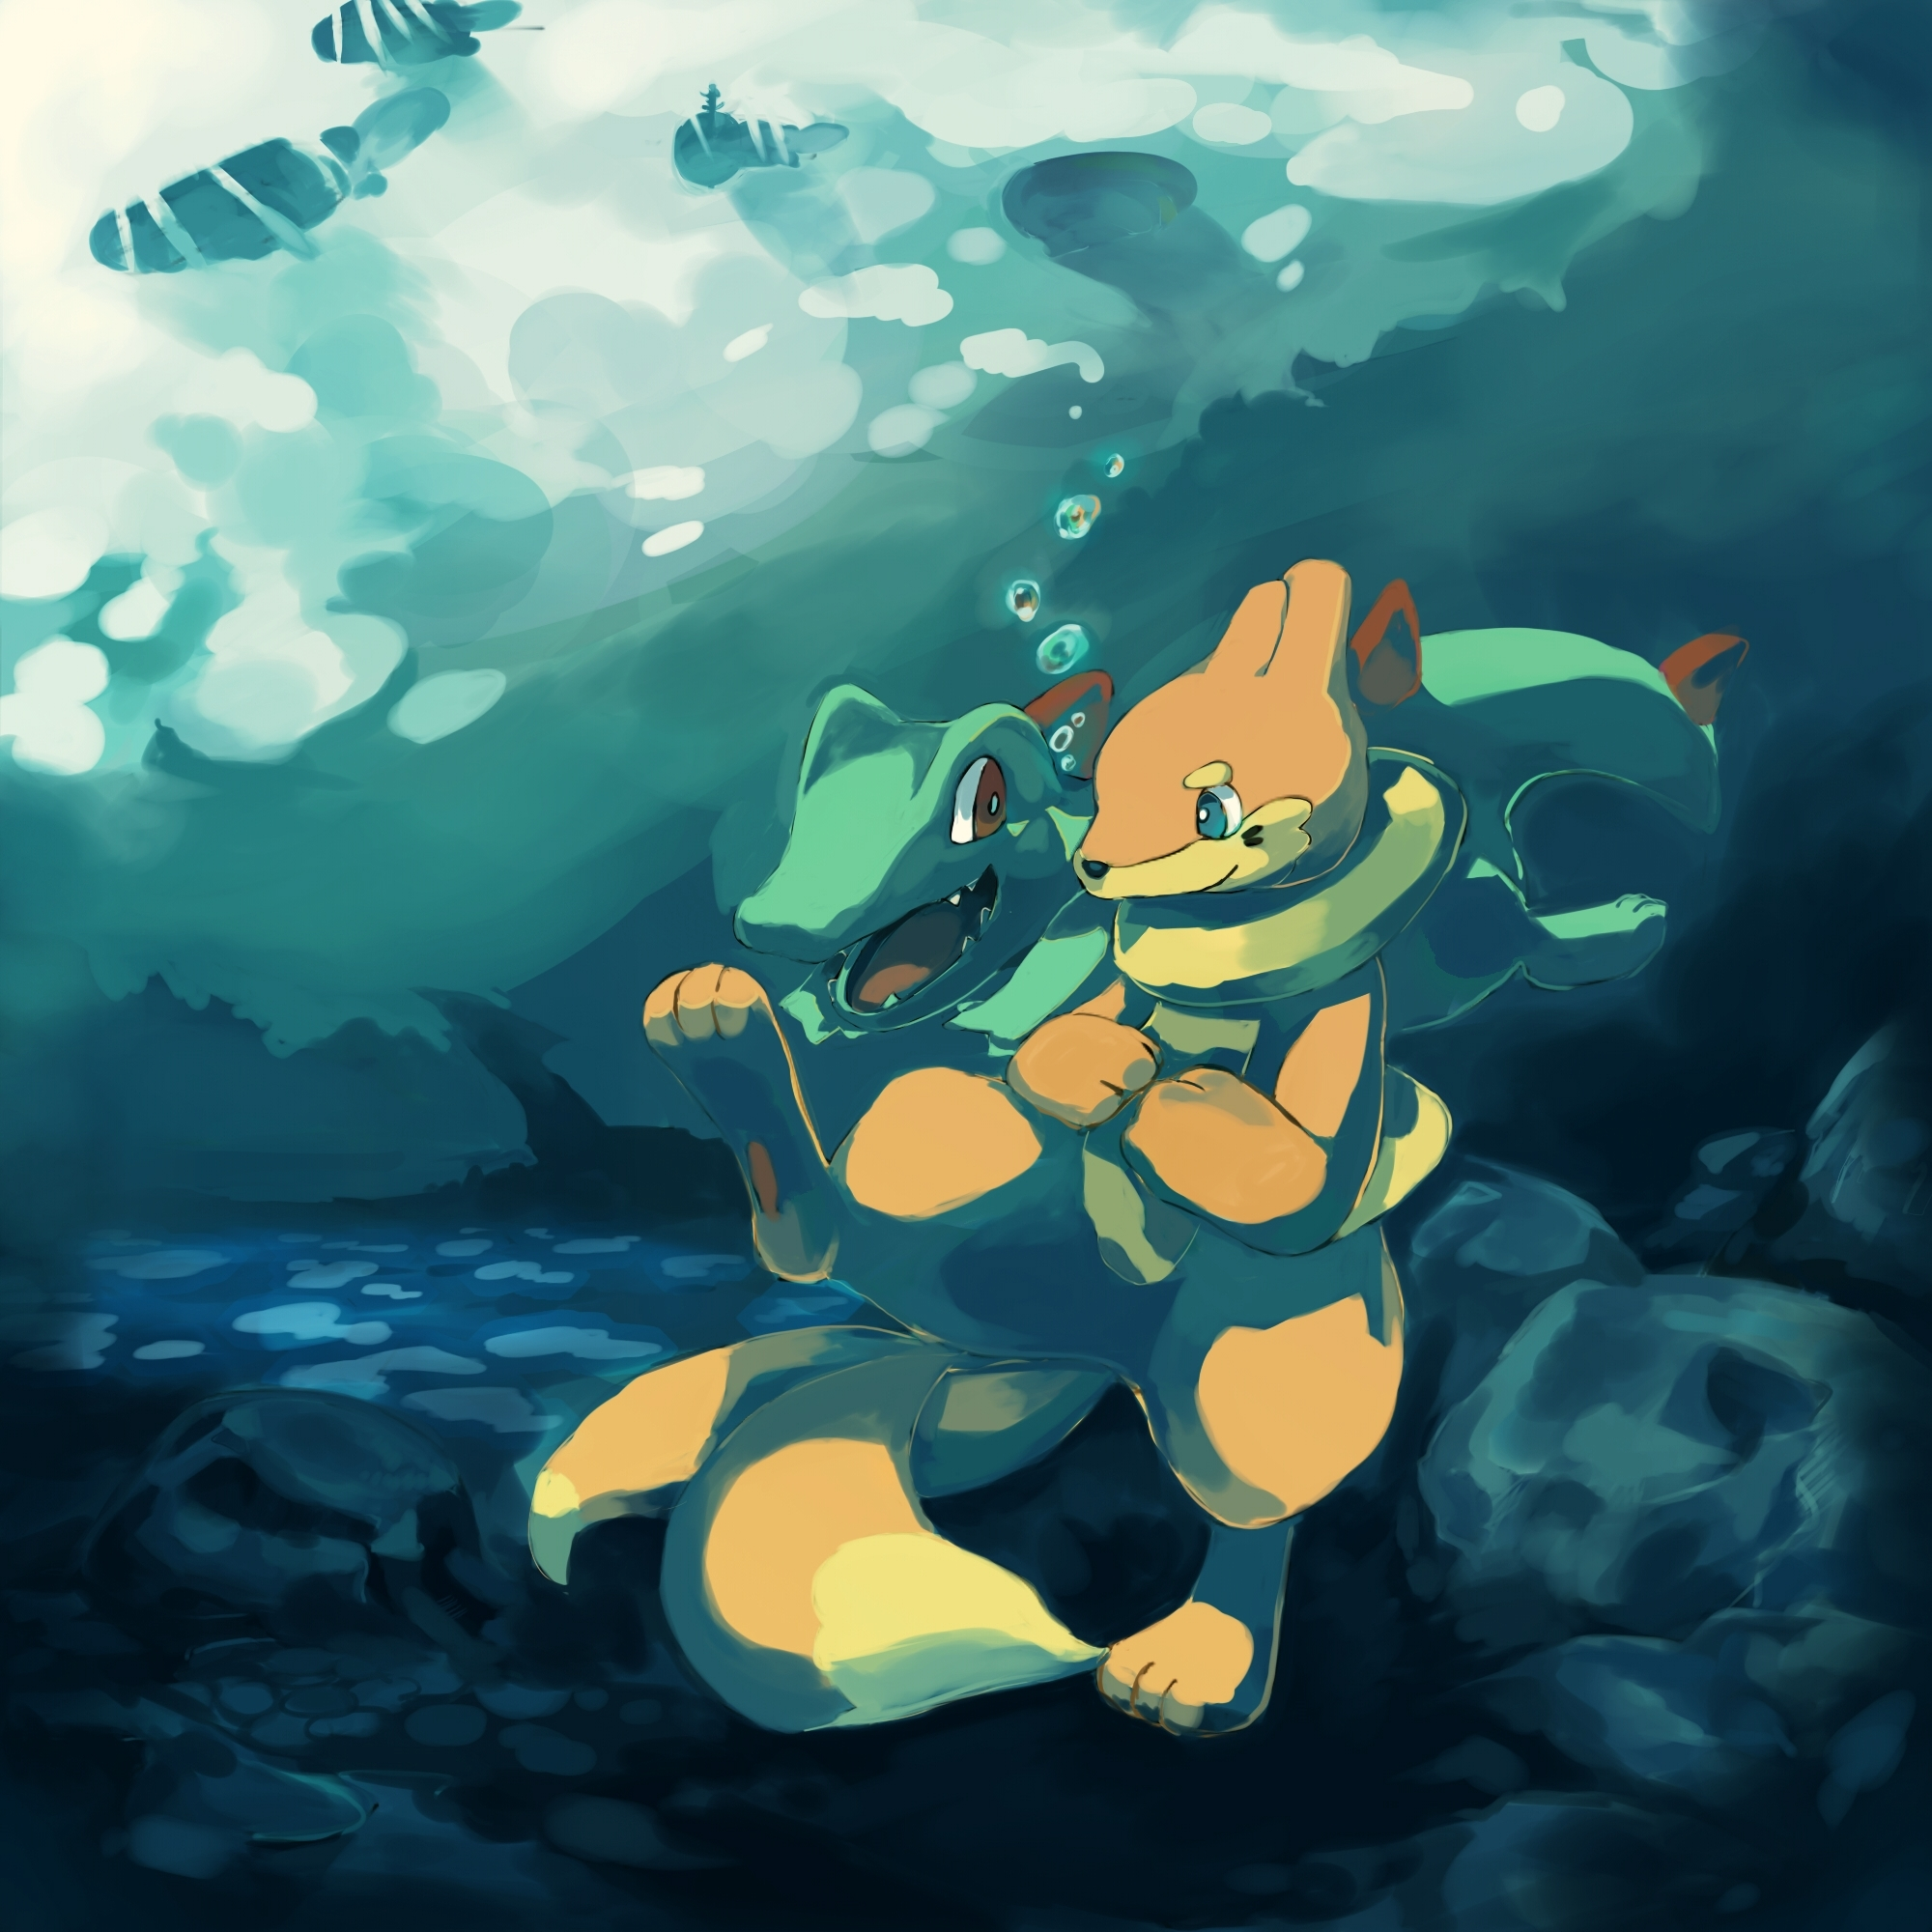 Totodile by Blue-Scribble on DeviantArt